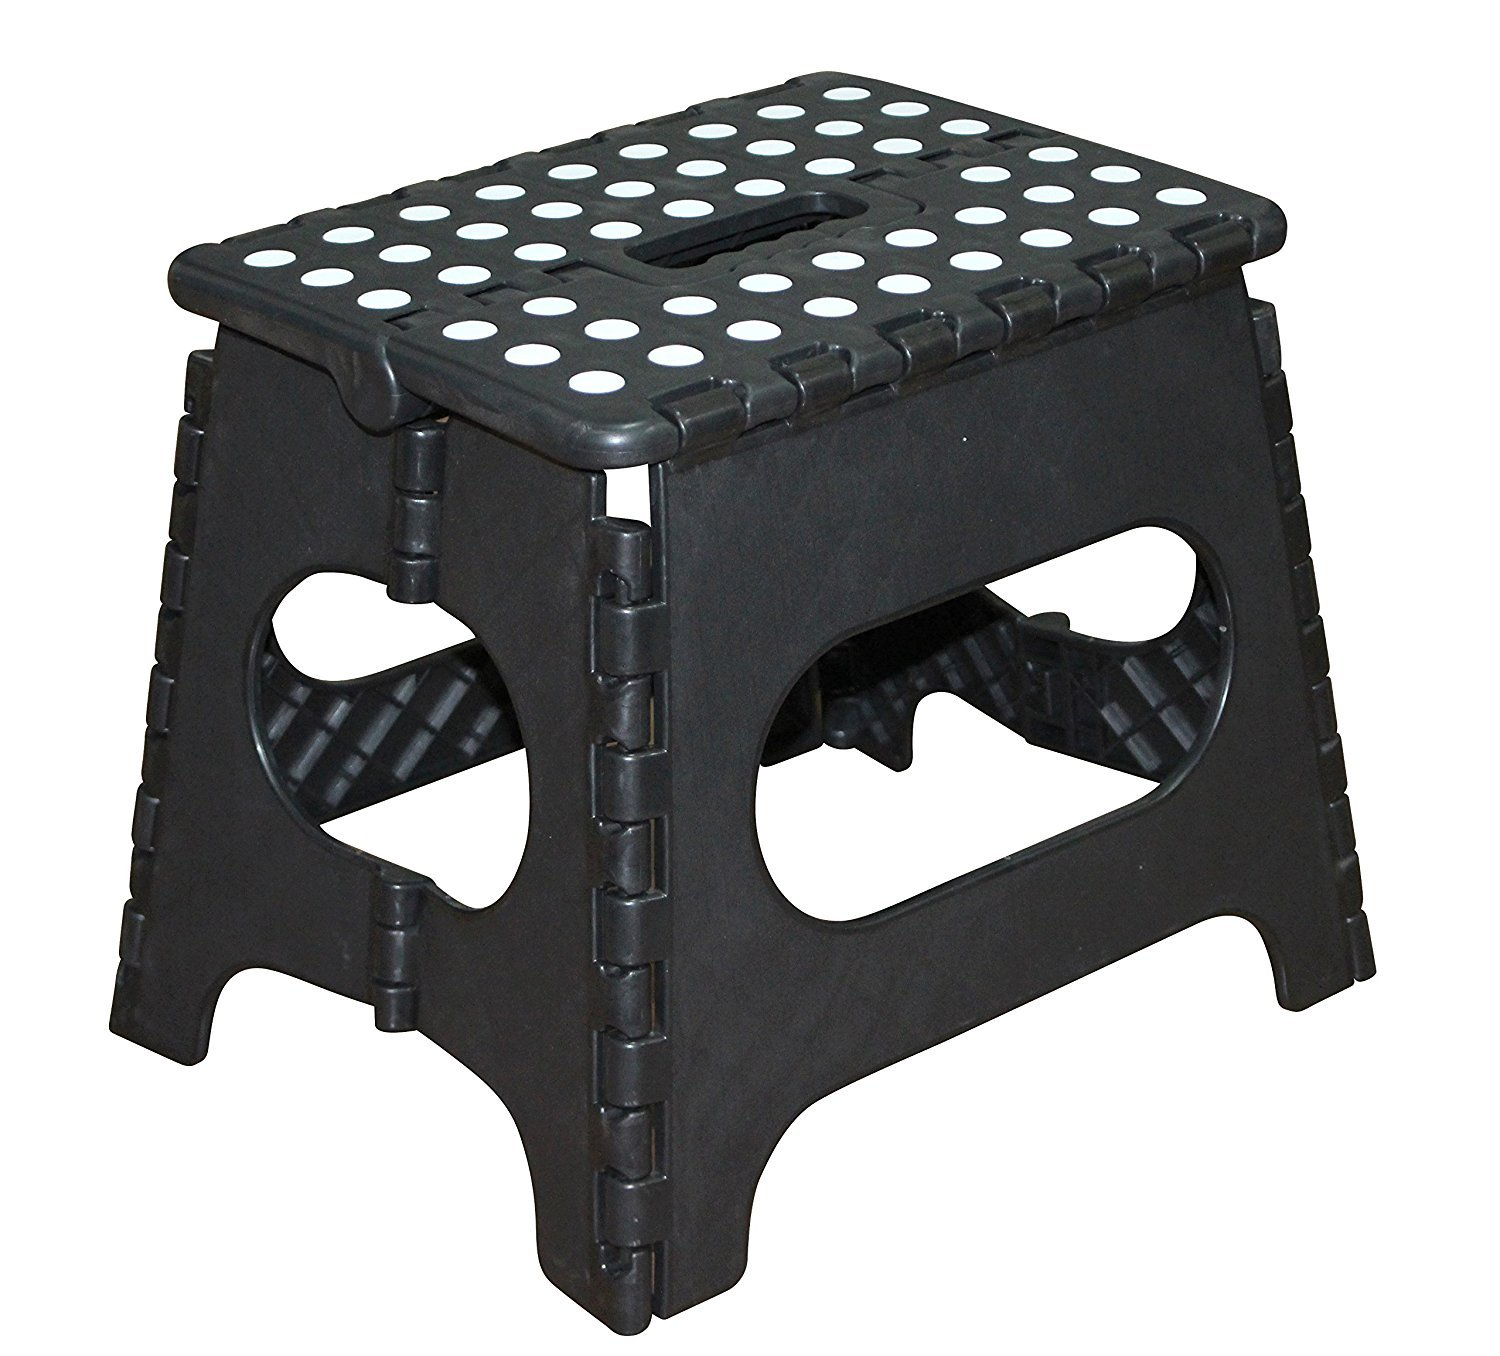 Galleon Jeronic 11 Inch Plastic Folding Step Stool Black